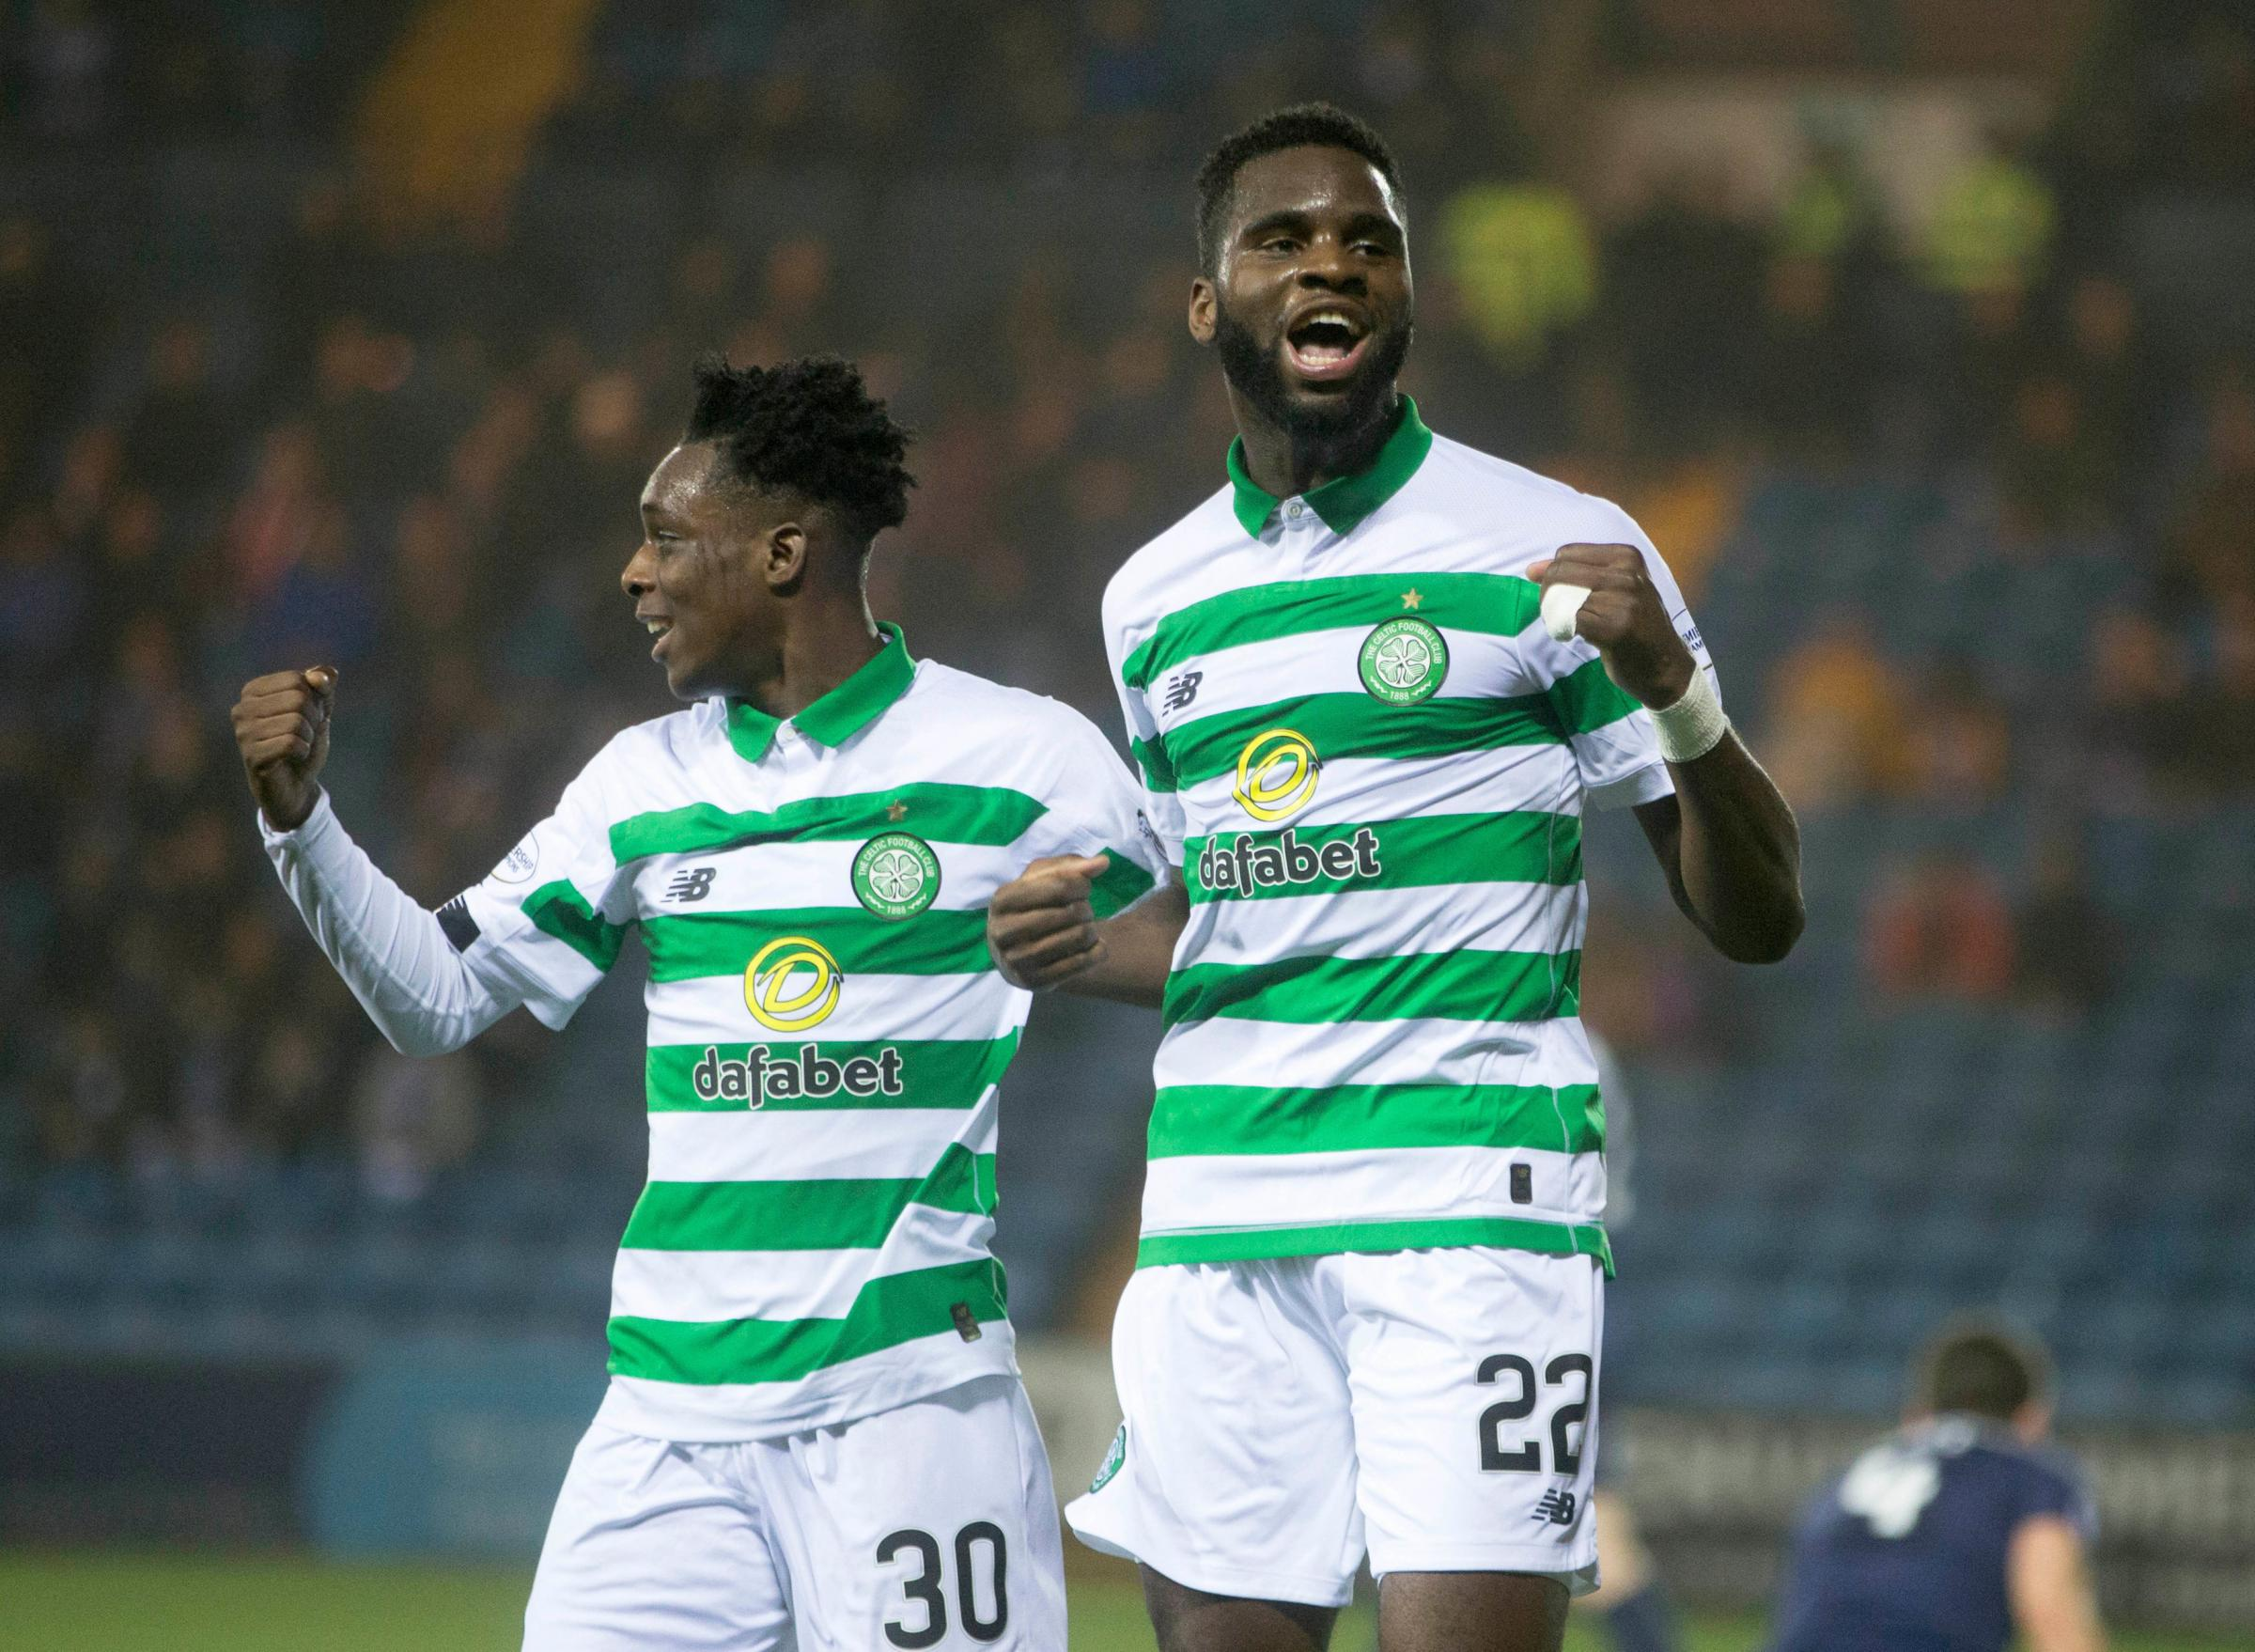 KILMARNOCK 1 CELTIC 3: How the Celtic players rated in win at Rugby Park